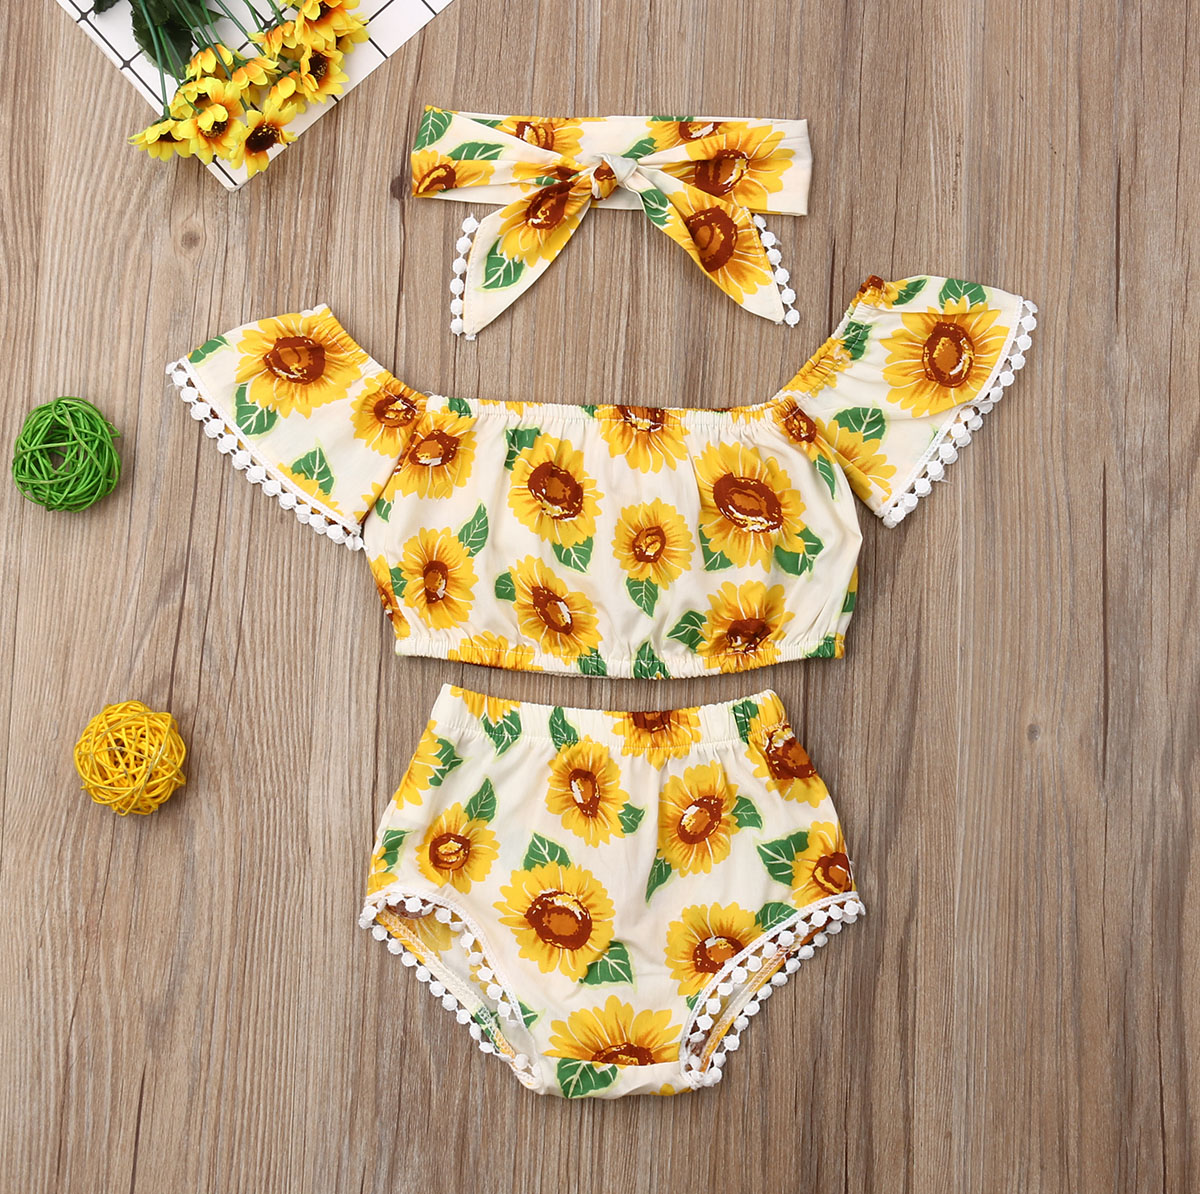 Pudcoco Newborn Baby Girl Clothes Summer Sunflower Print Short Sleeve Tassel Crop Tops Short Pants Headband 3Pcs Outfits Sunsuit